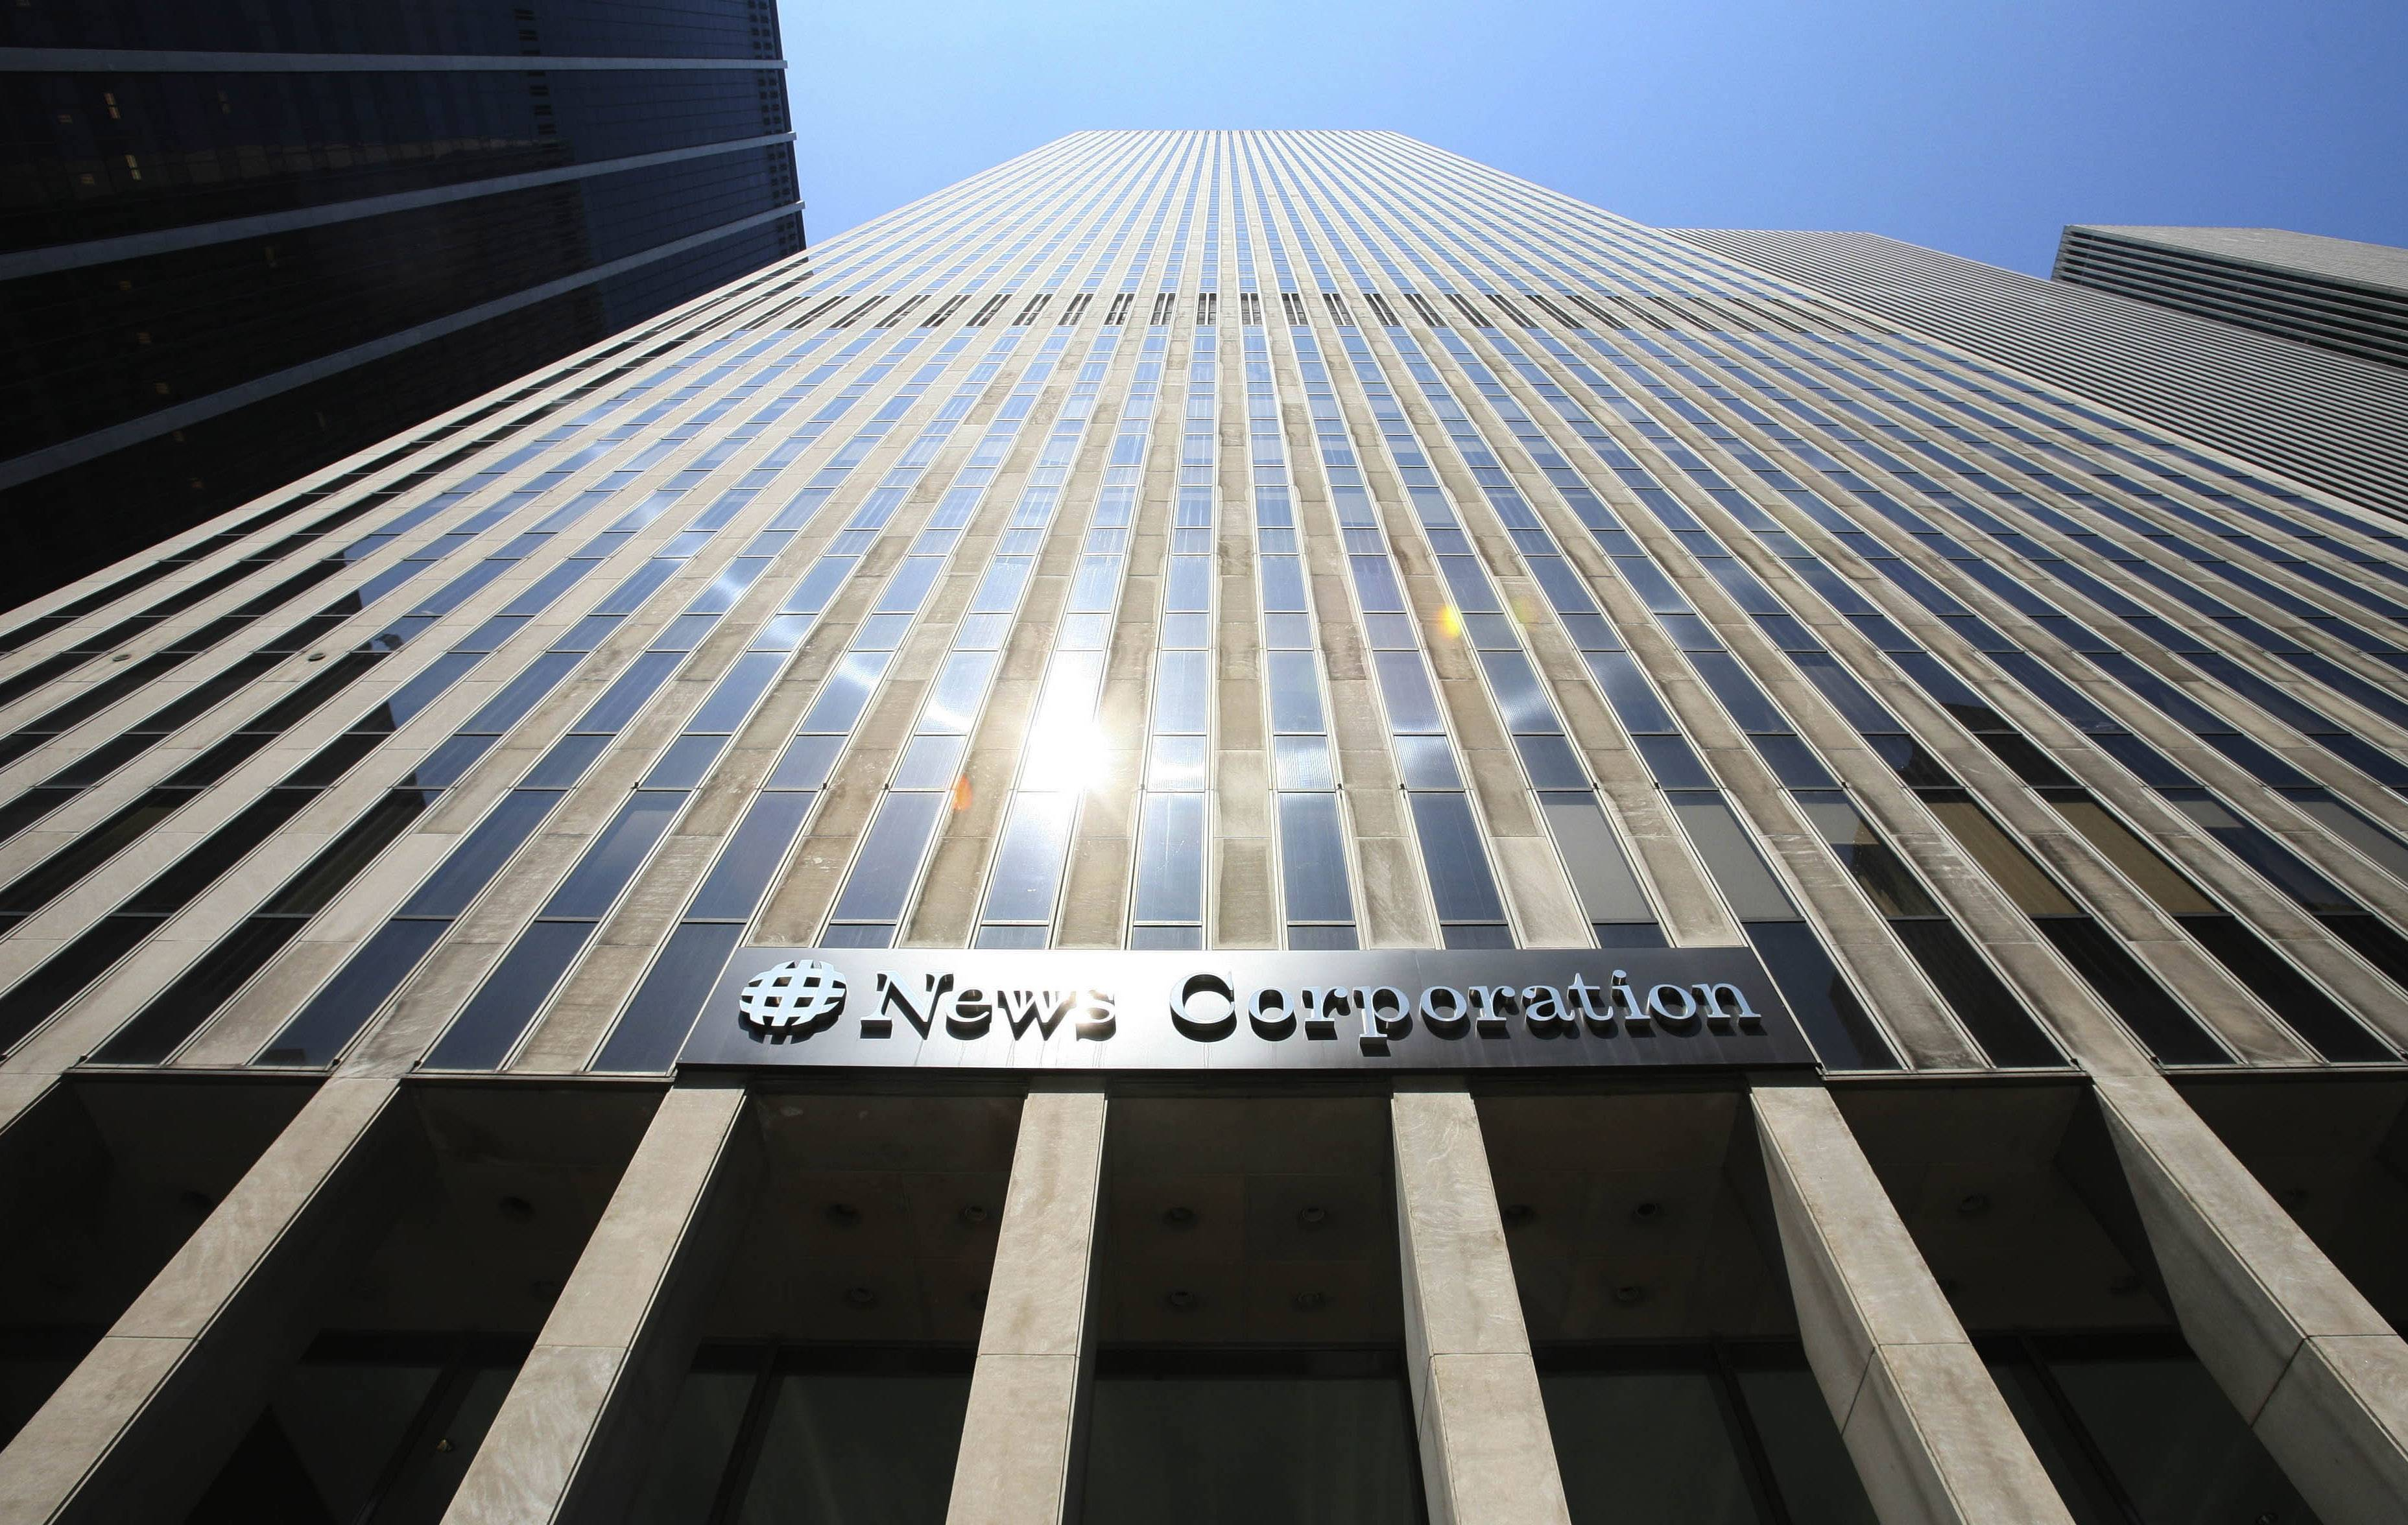 News Corp's headquarters is shown in New York. News Corp. said Monday that its new publishing company will keep the News Corp. name, while its separate media and entertainment company will be renamed Fox Group.